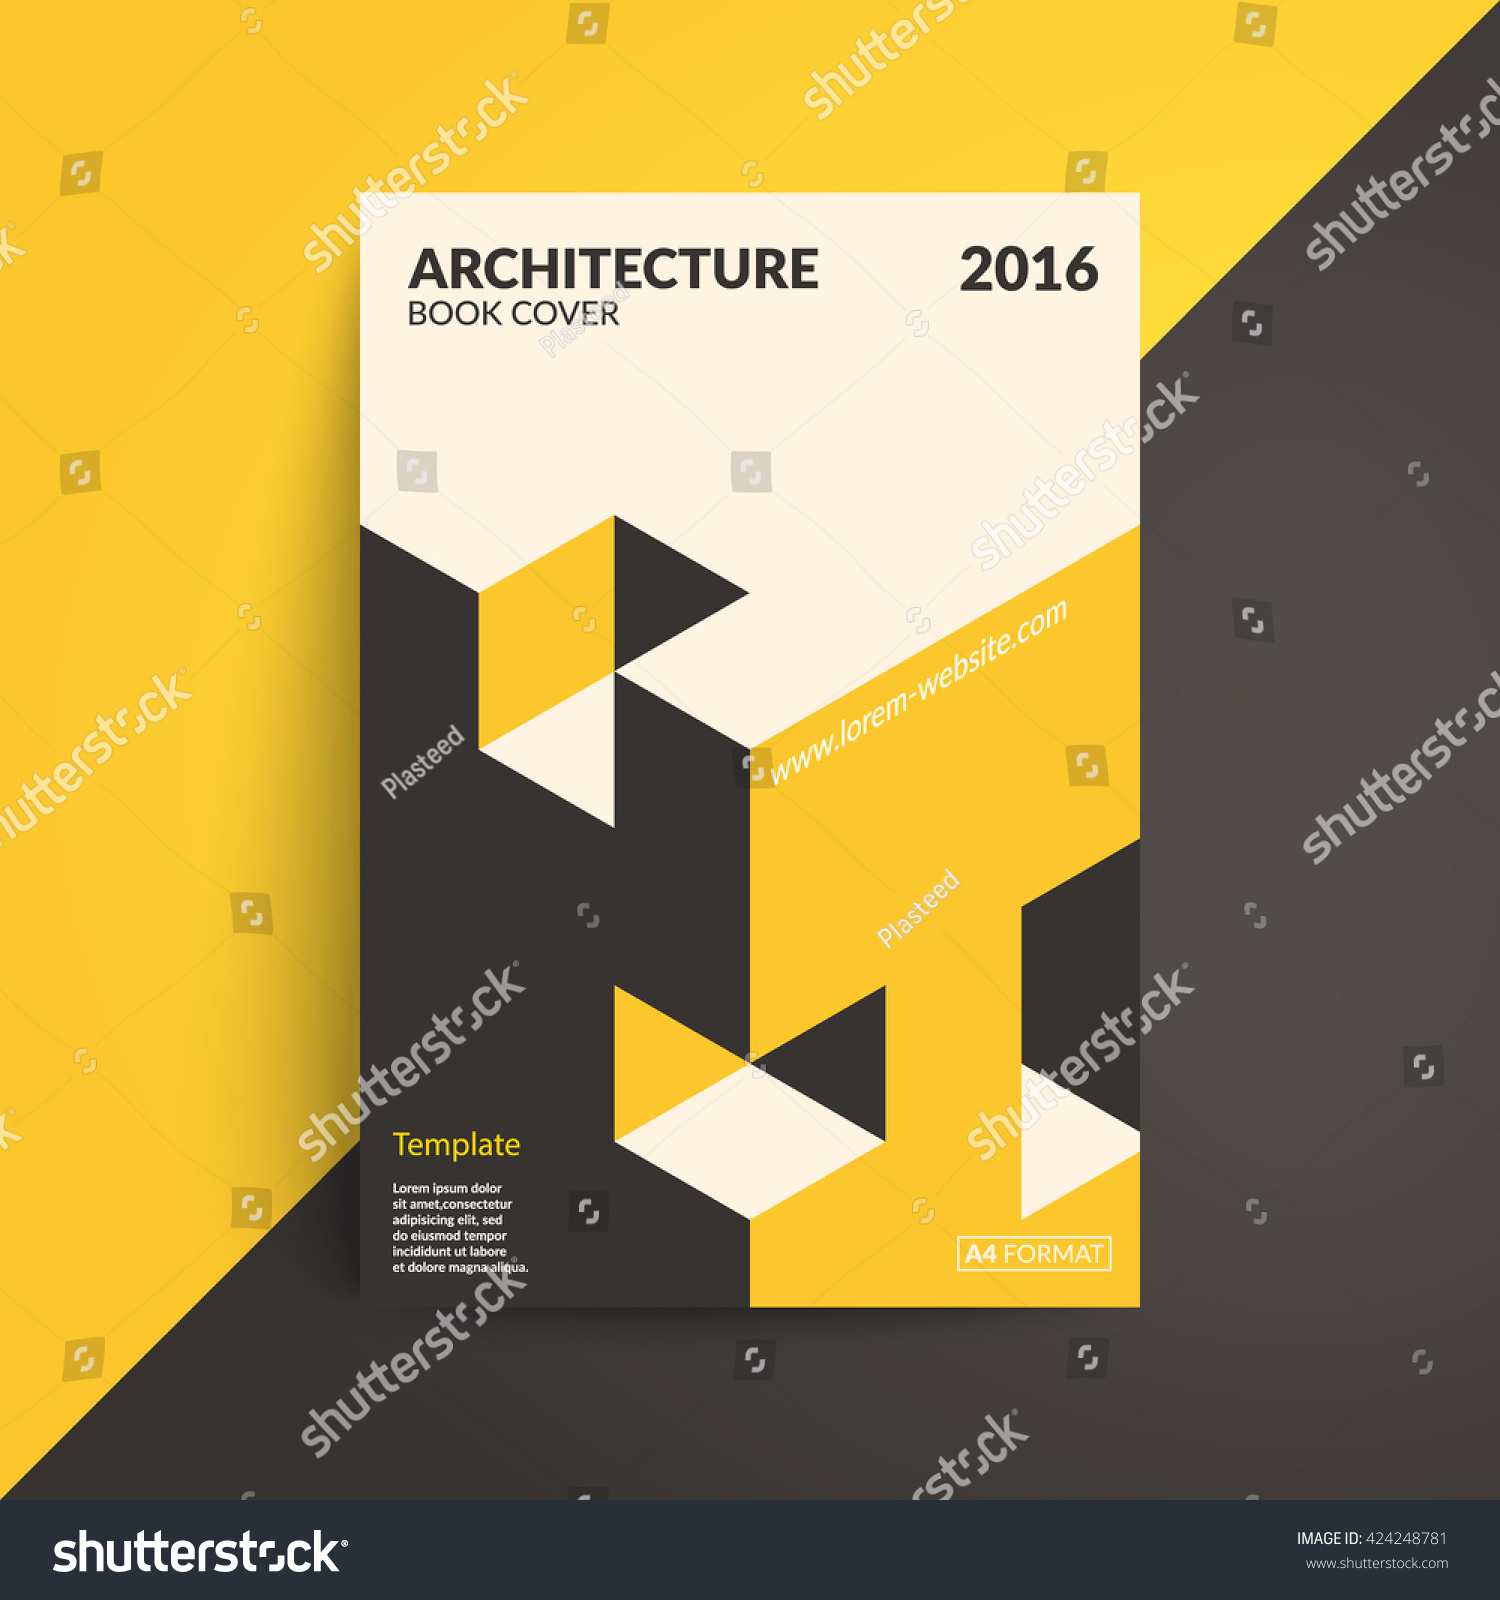 Minimalist Book Cover Template : Isometric cover design architecture book a stock vector